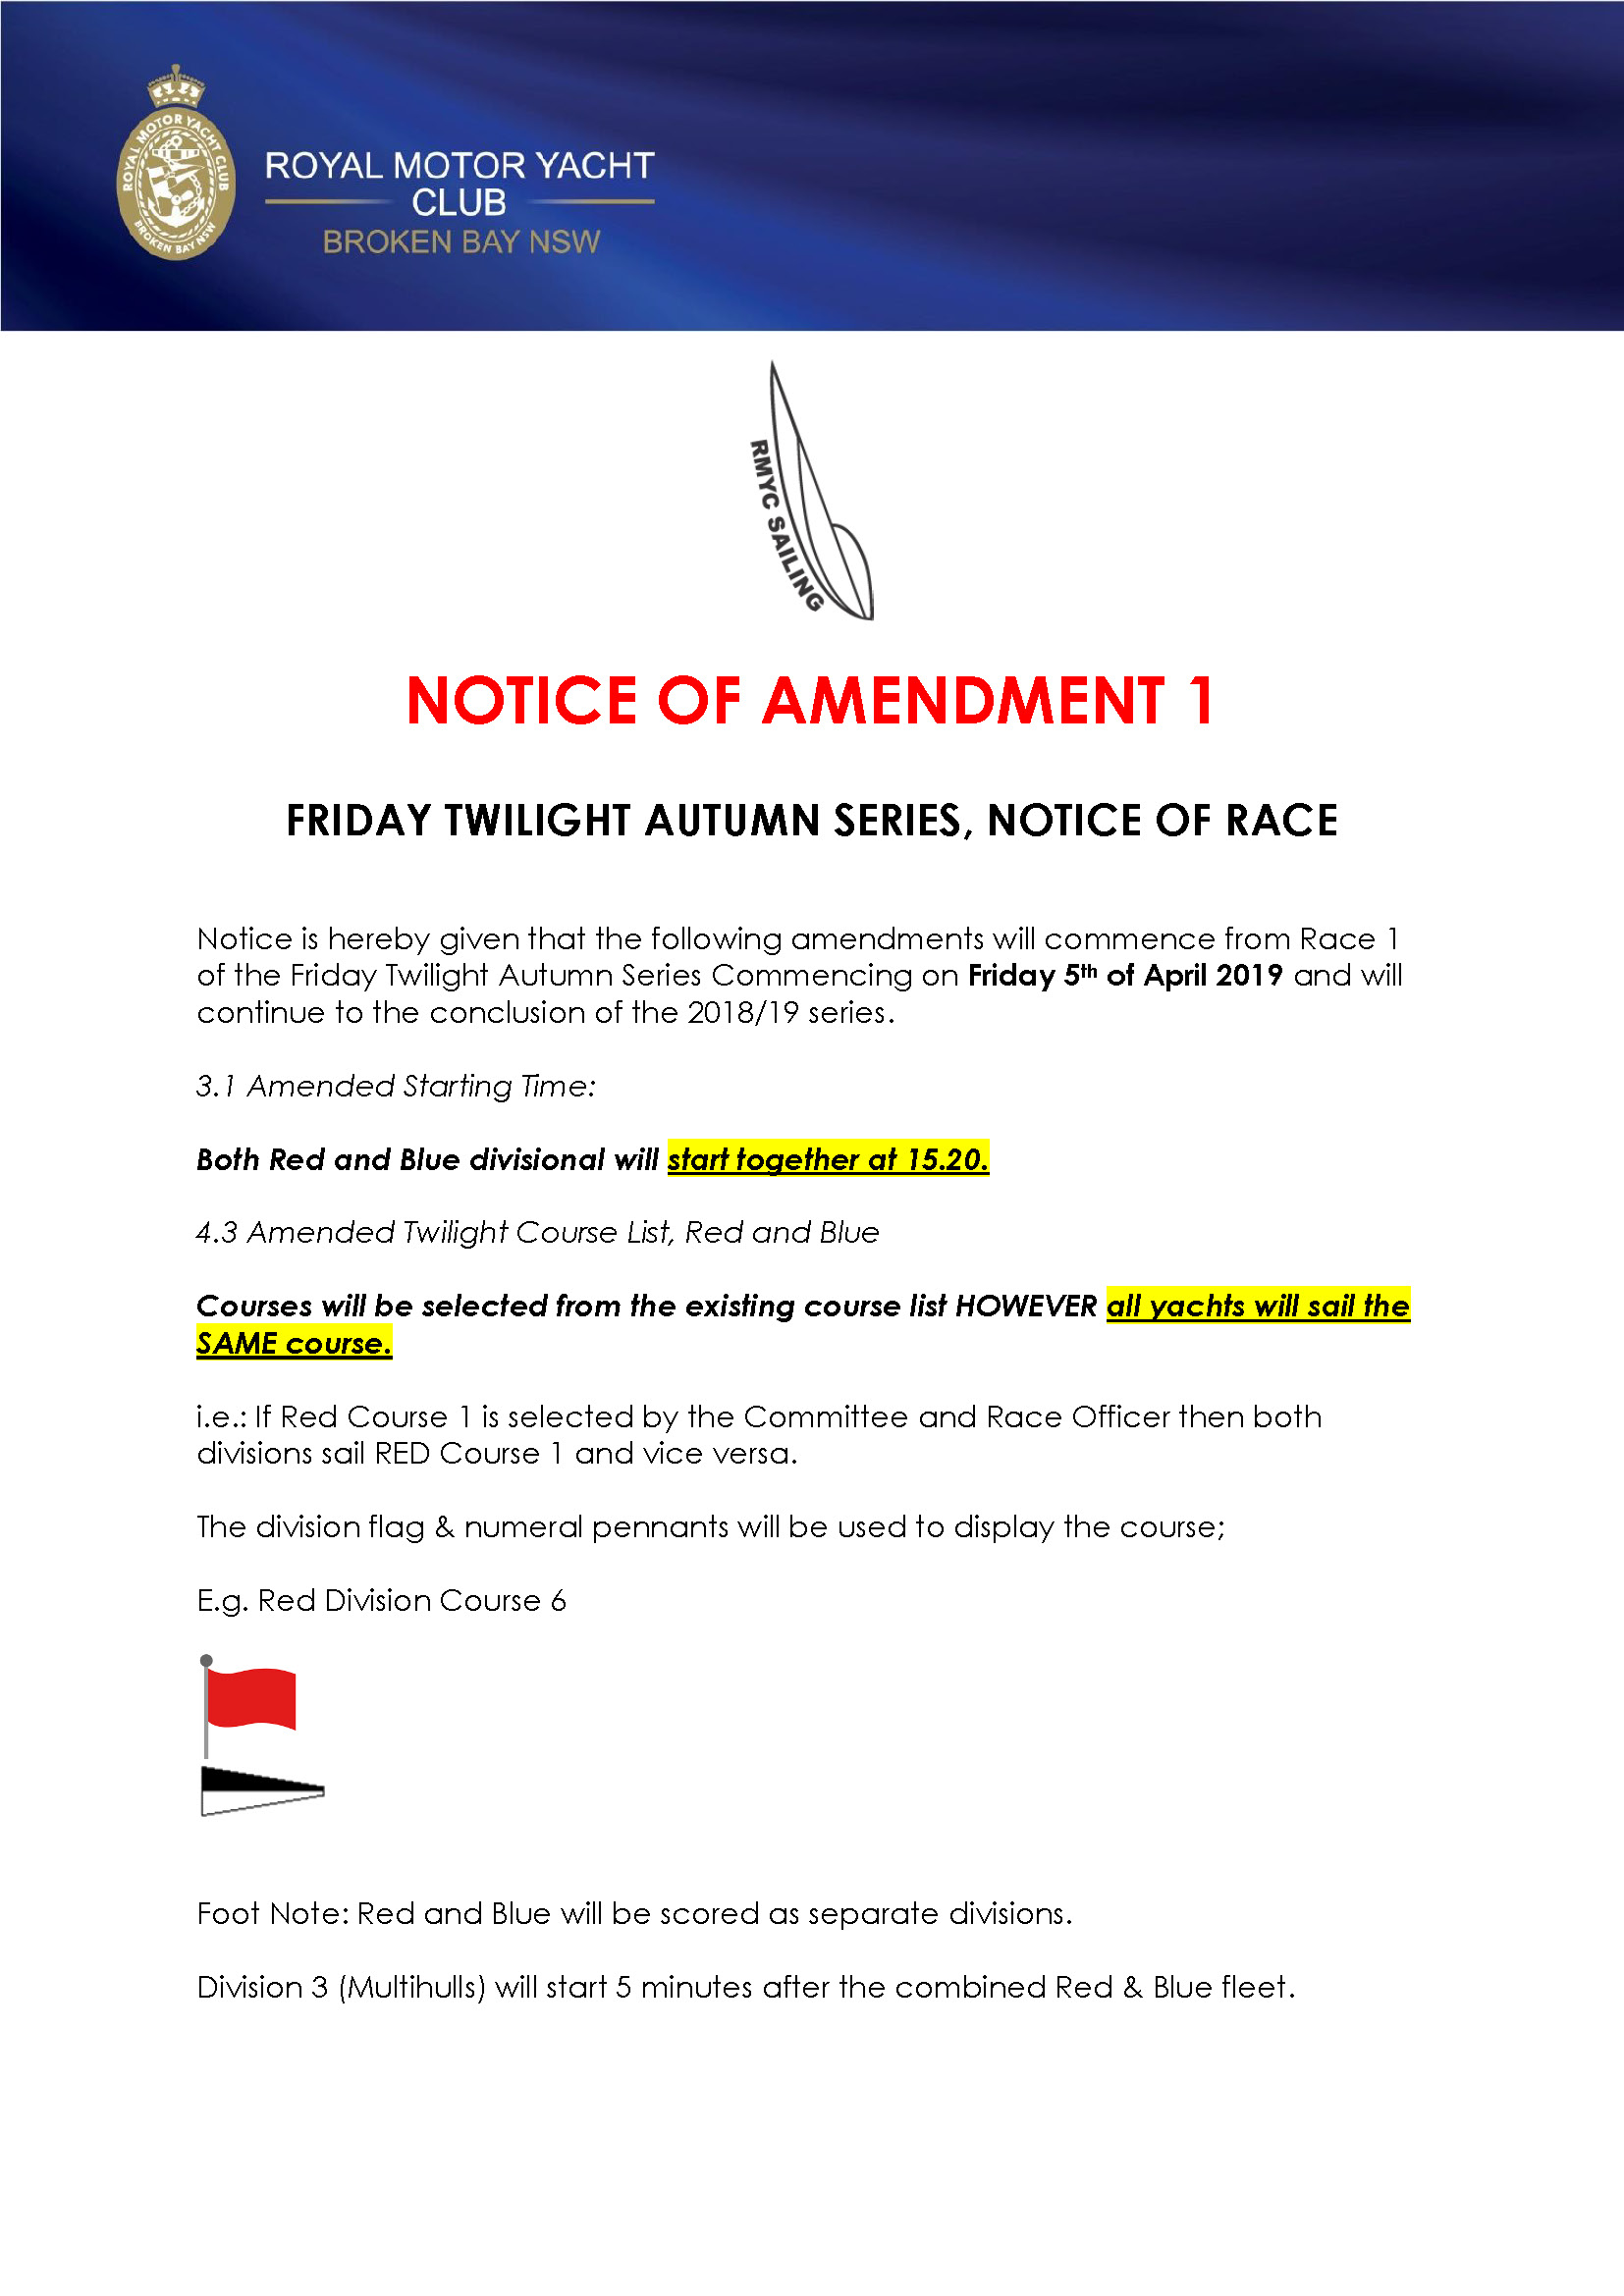 NOTICE OF AMENDMENT 1 Friday Twilight Autumn Series